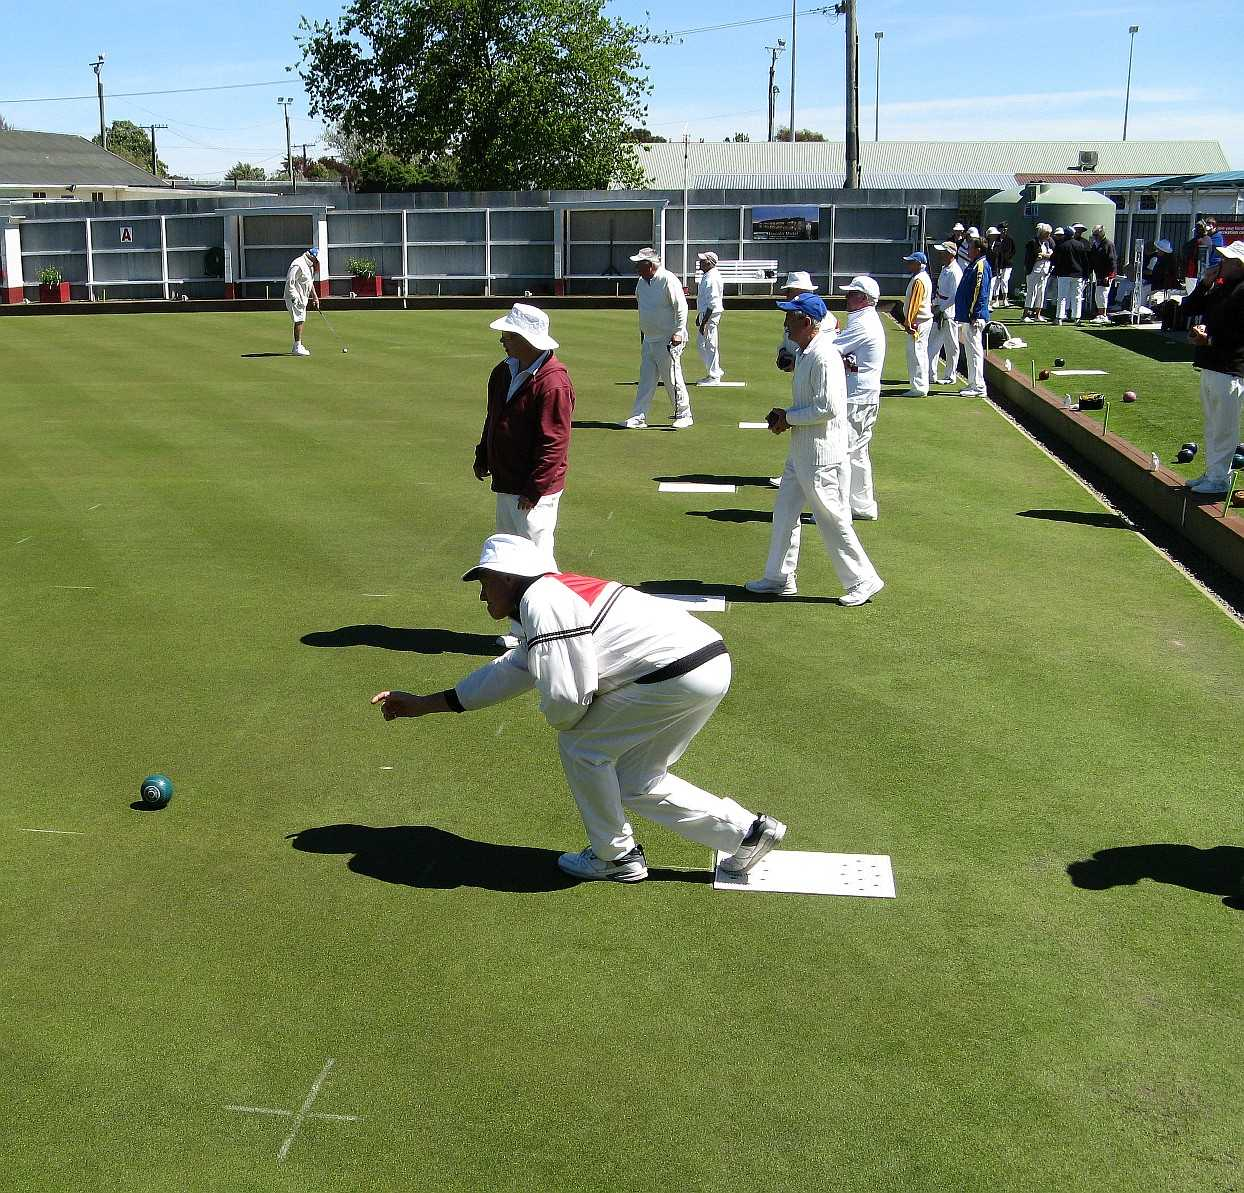 Saturday pm - Bowls on 2 greens: Ladies 7's & 2x4, Chatterton Cup, Rooster & social bowling !